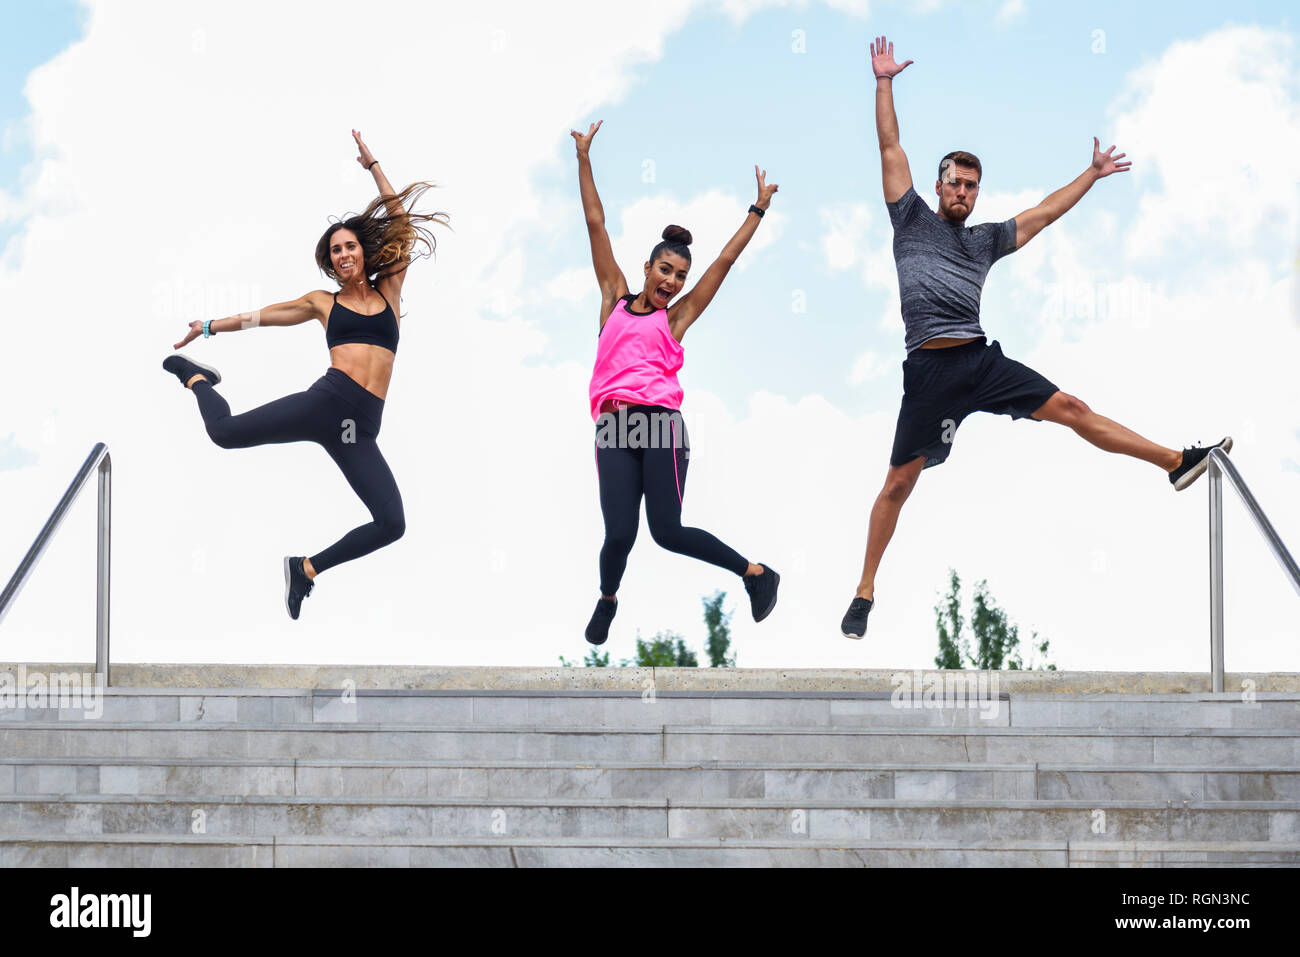 Young athletes jumping for joy on stairs - Stock Image